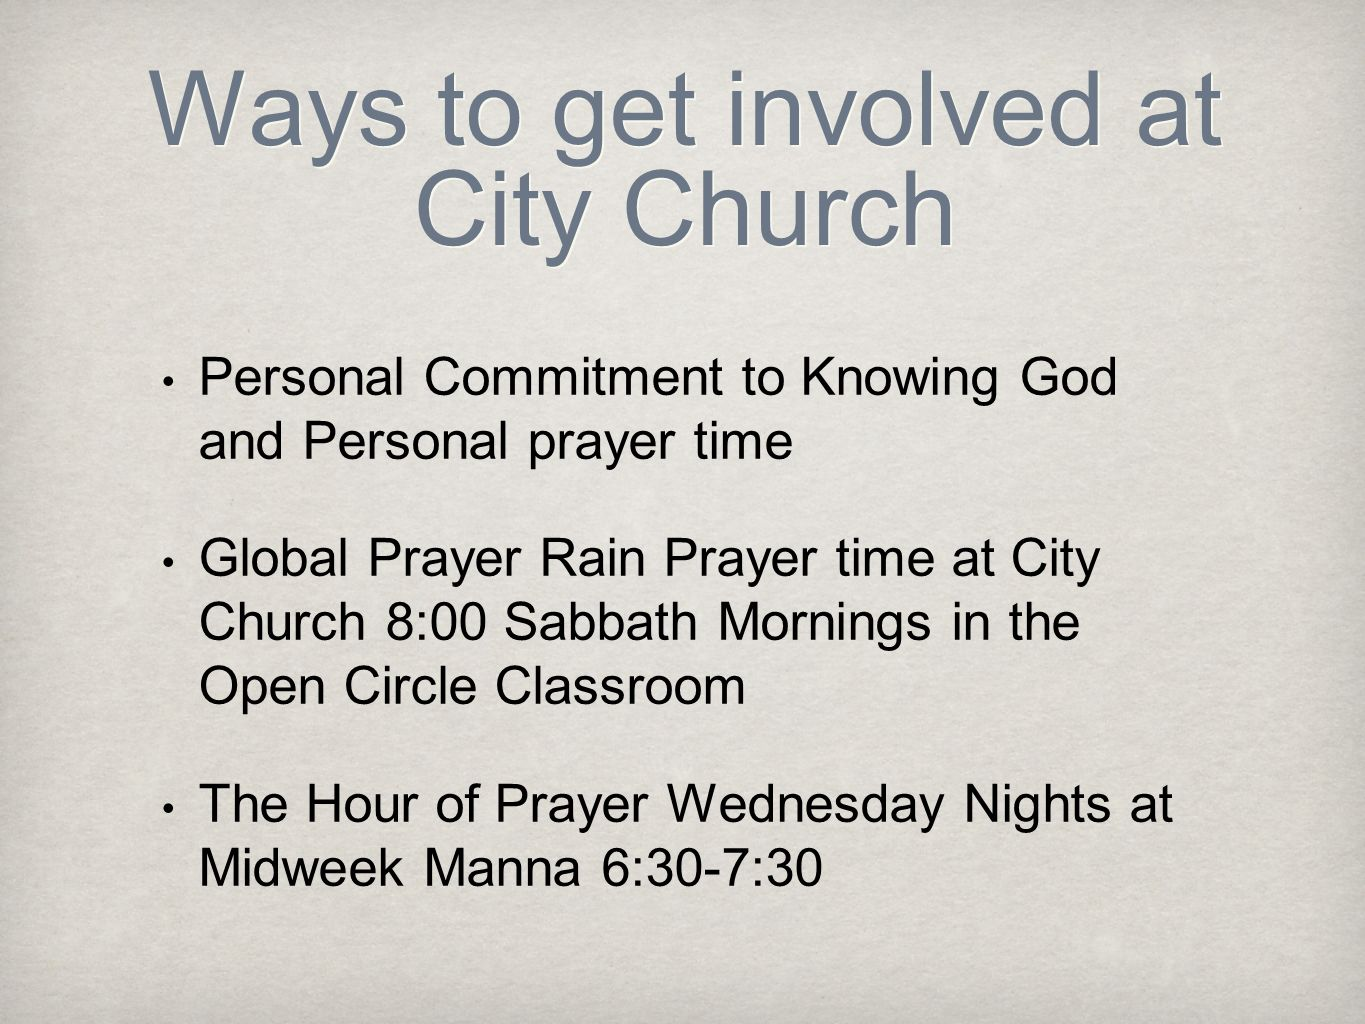 Ways to get involved at City Church